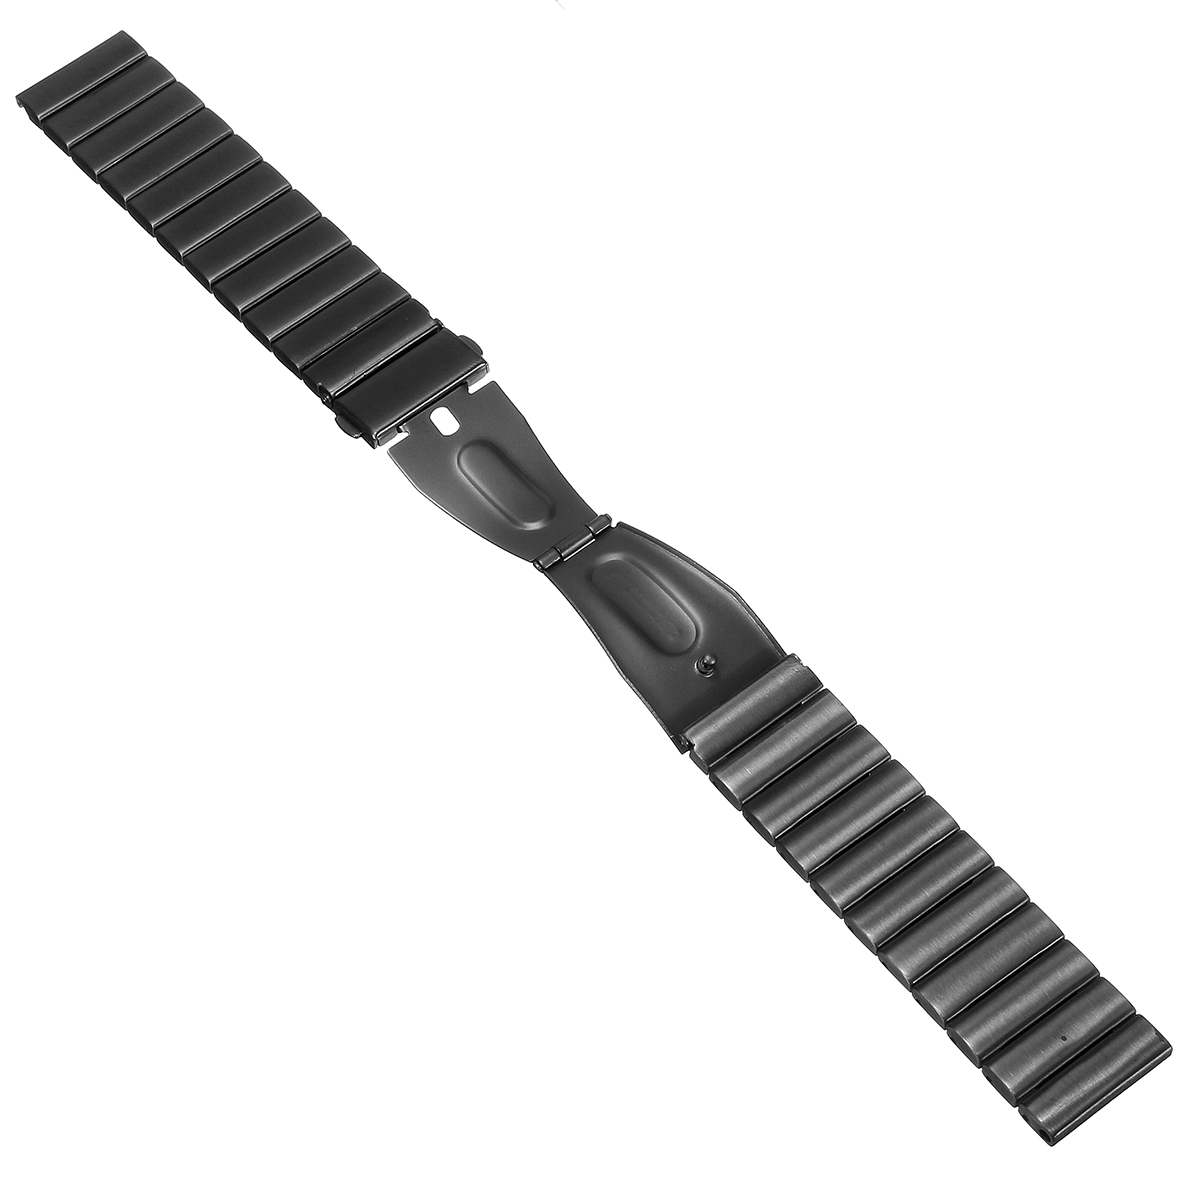 Stainless Steel Metal Watch Band Strap Bracelet For Samsung Gear S3 Frontier